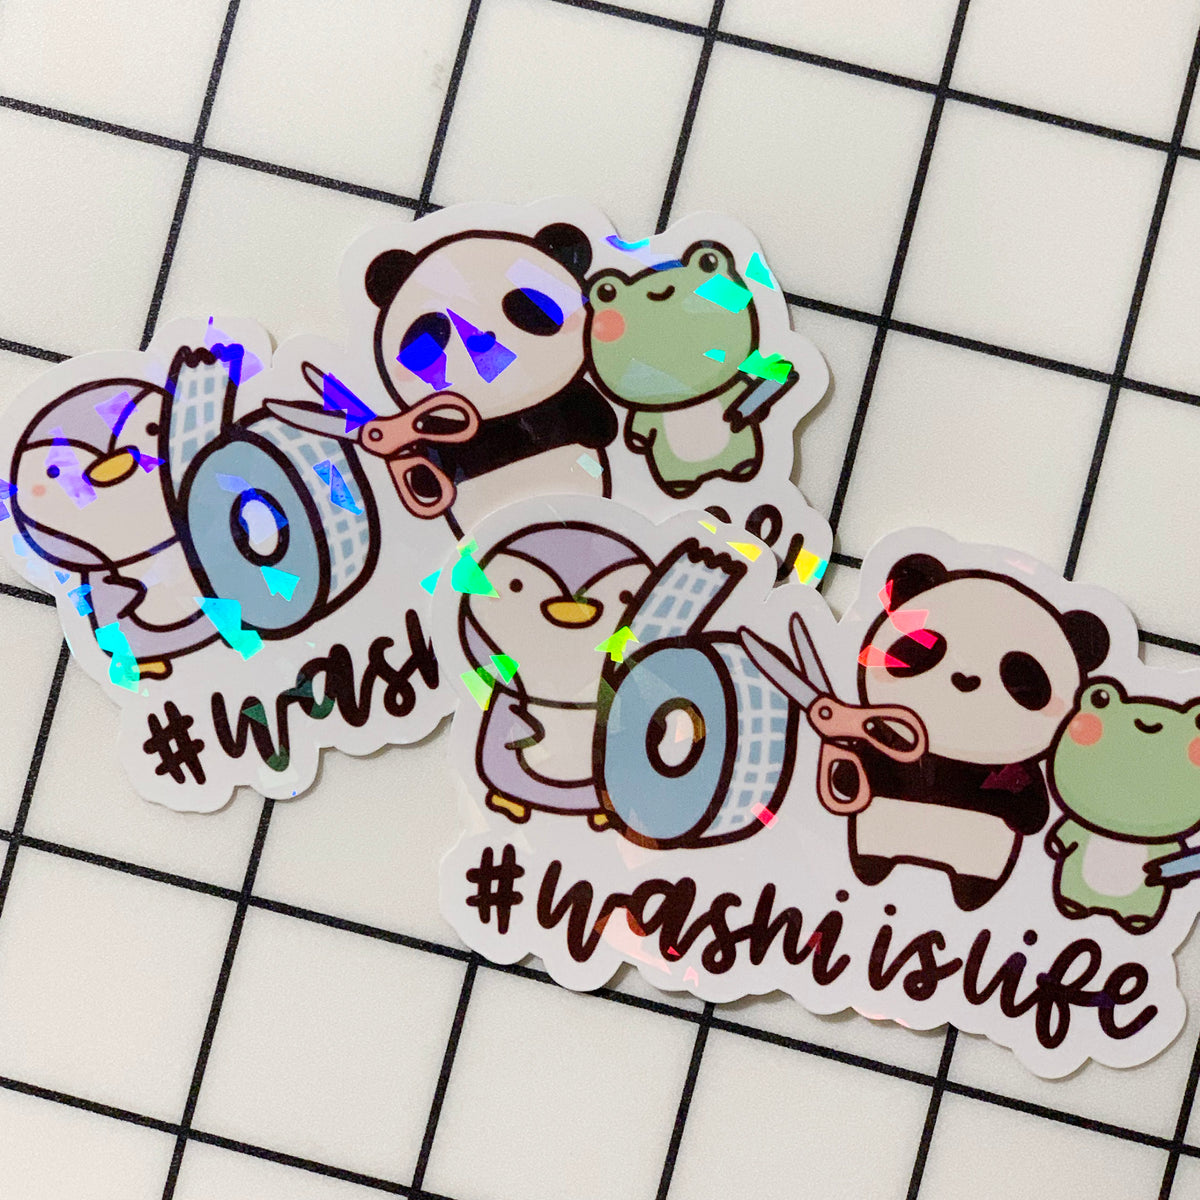 #WashiIsLife Sticker Flake